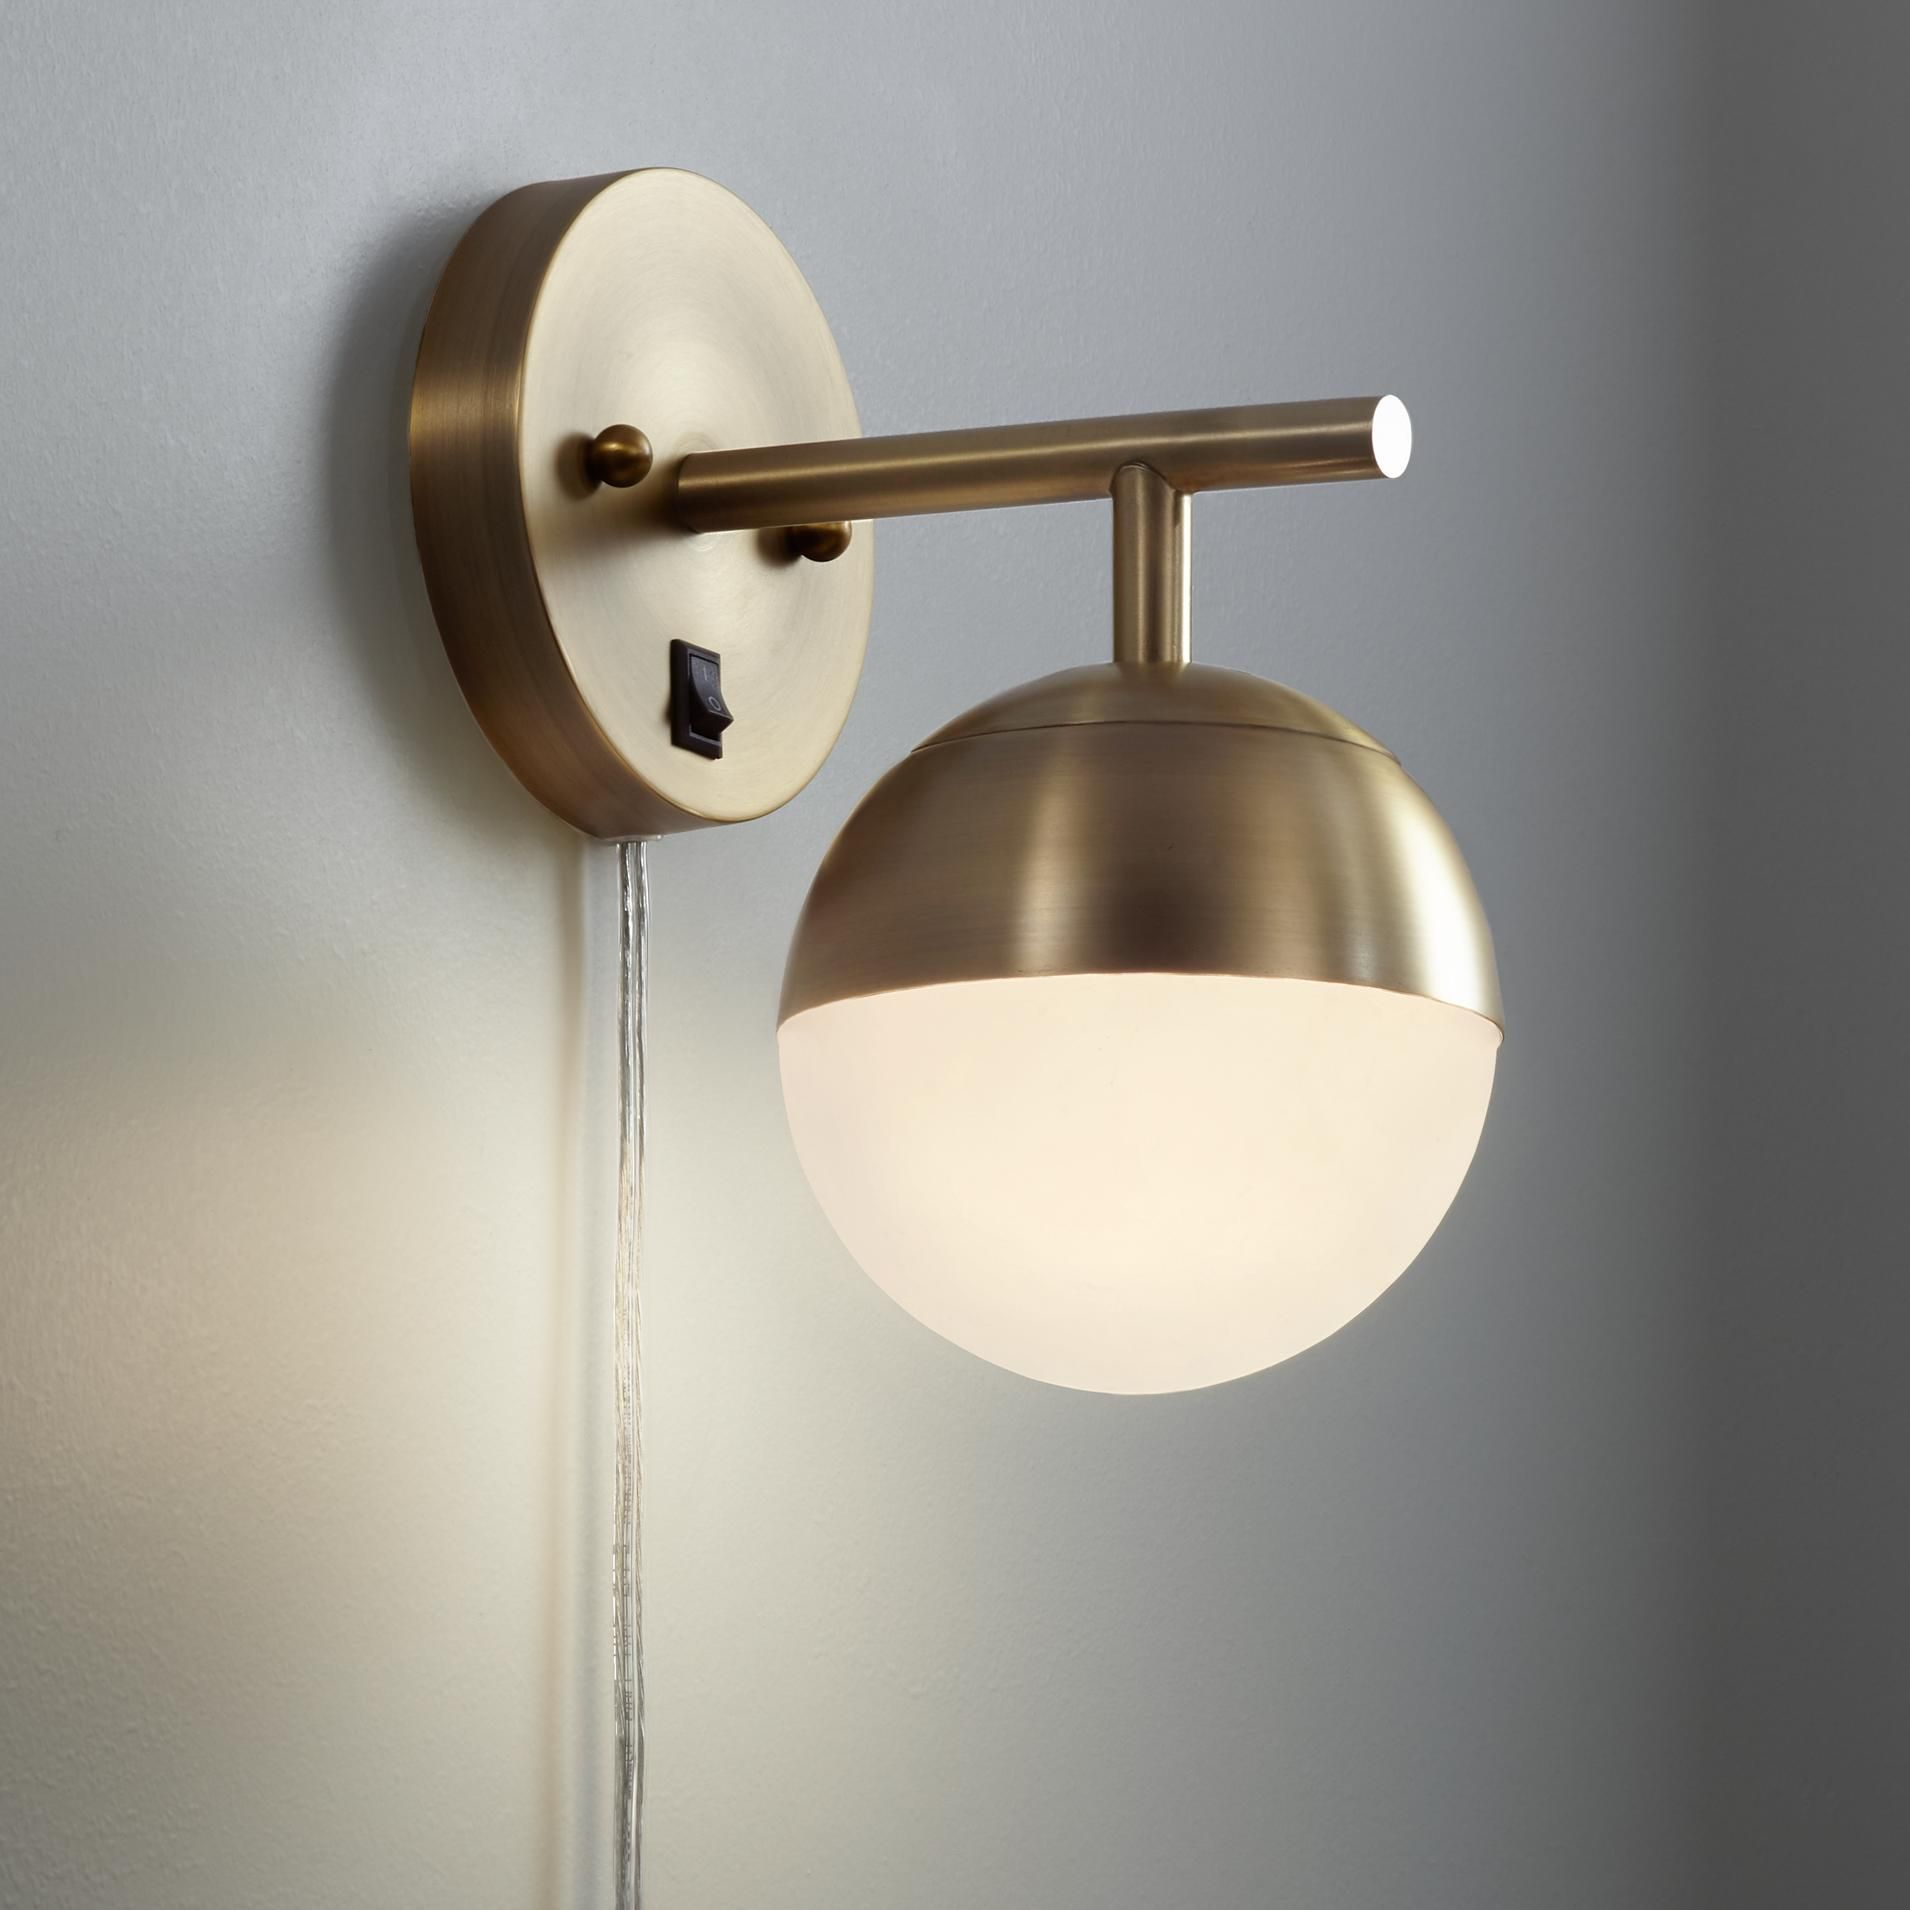 Pin On Wall Lamps